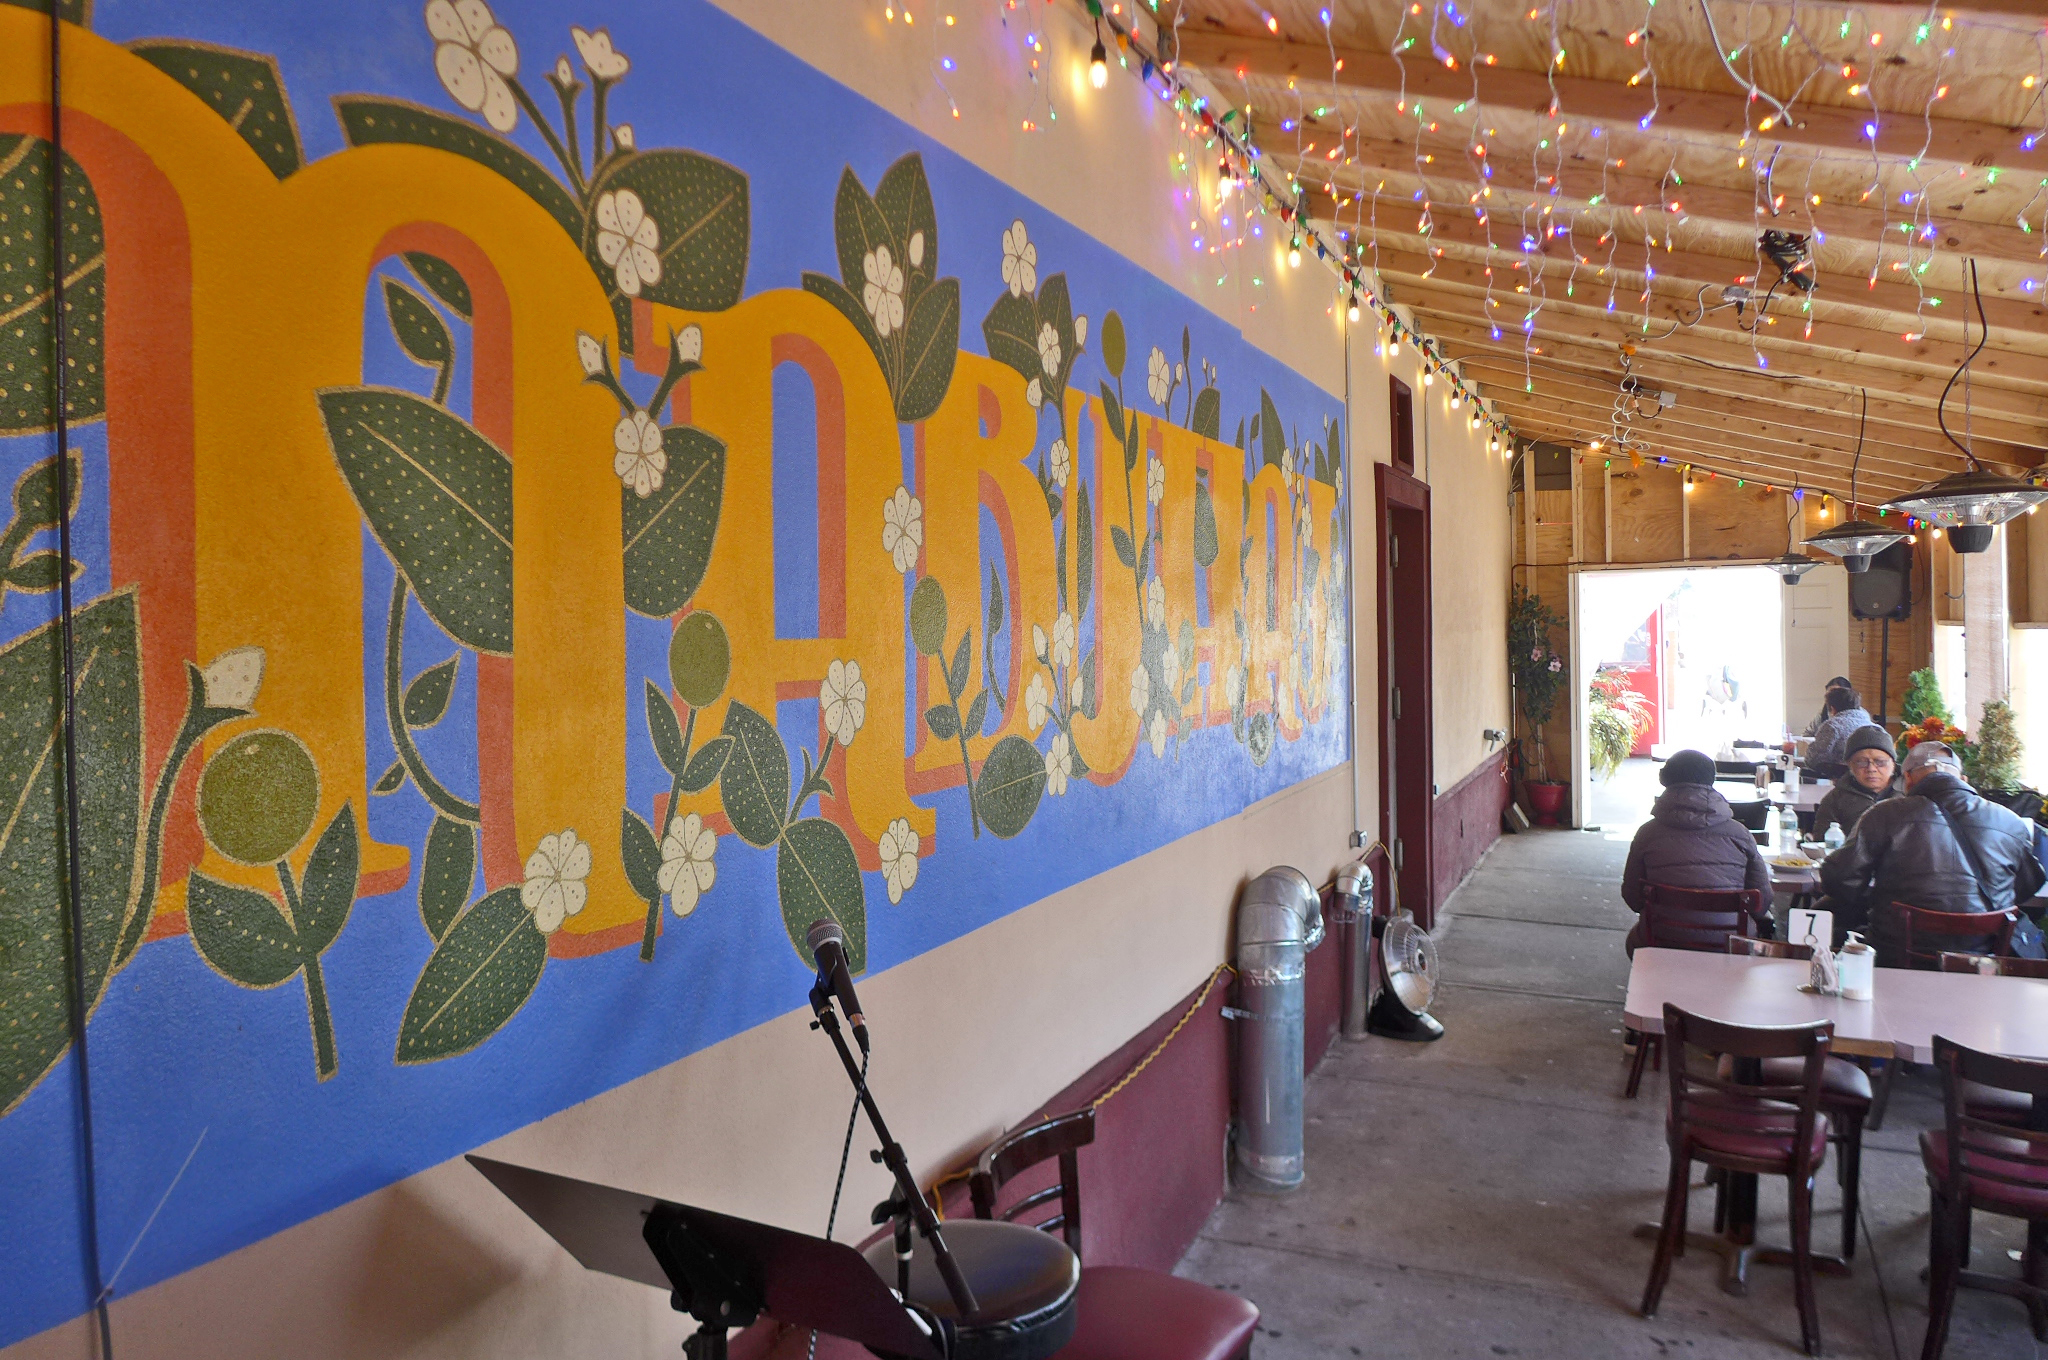 An outdoor seating area with mural on a wall to the left and customers seated at a table to the right.